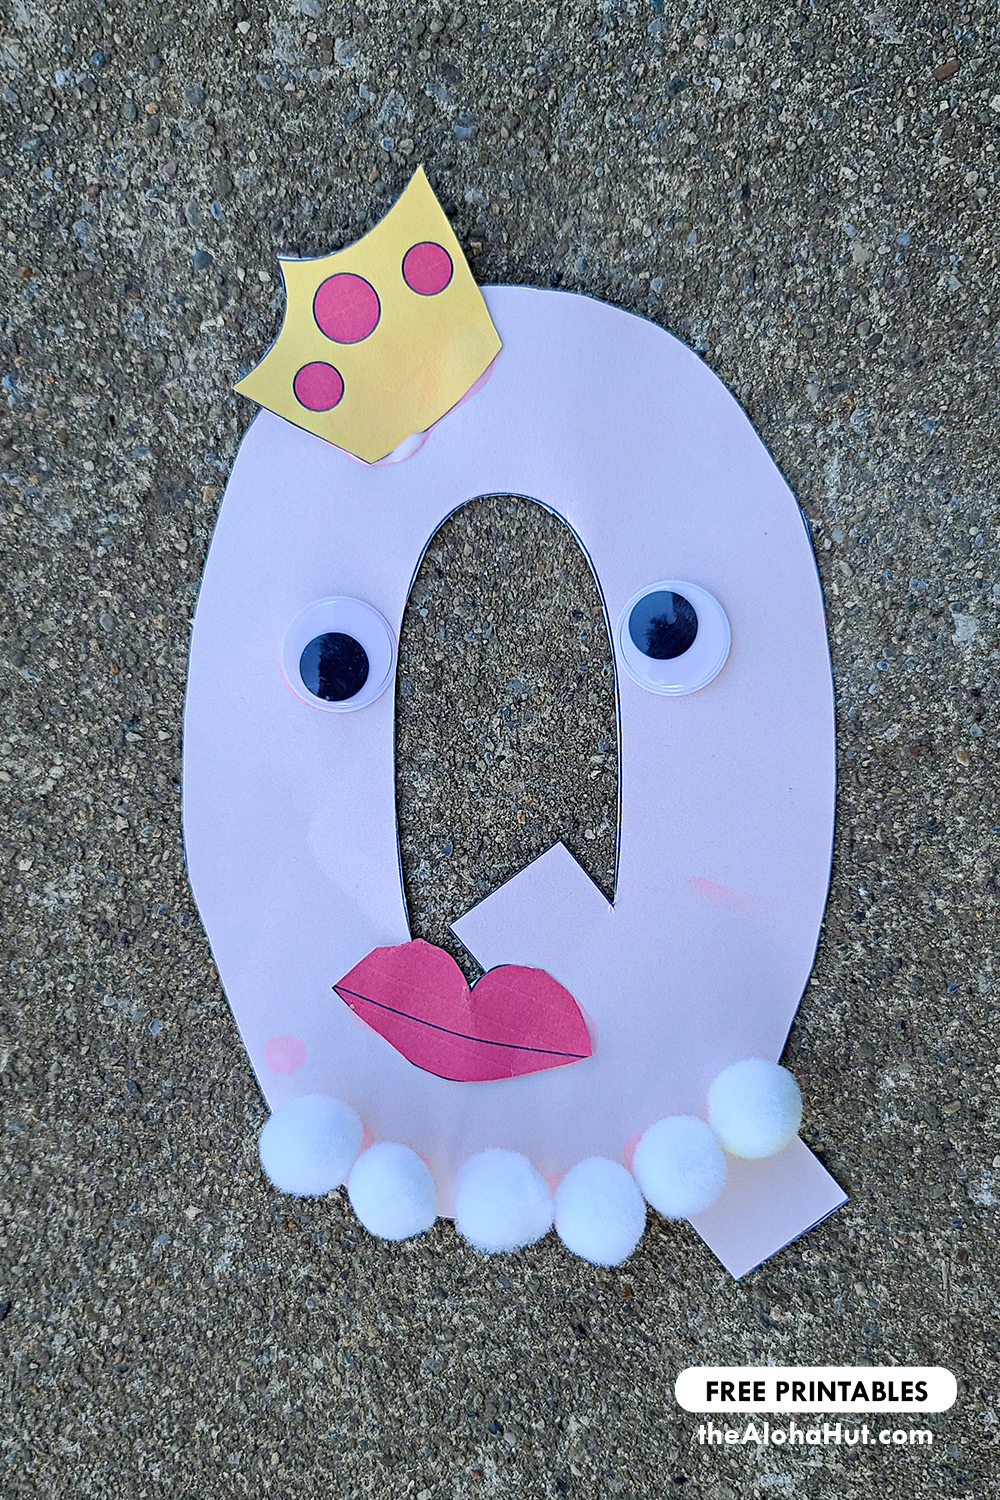 Alphabet Letter Crafts - Letters Q- free printables 2 by the Aloha Hut